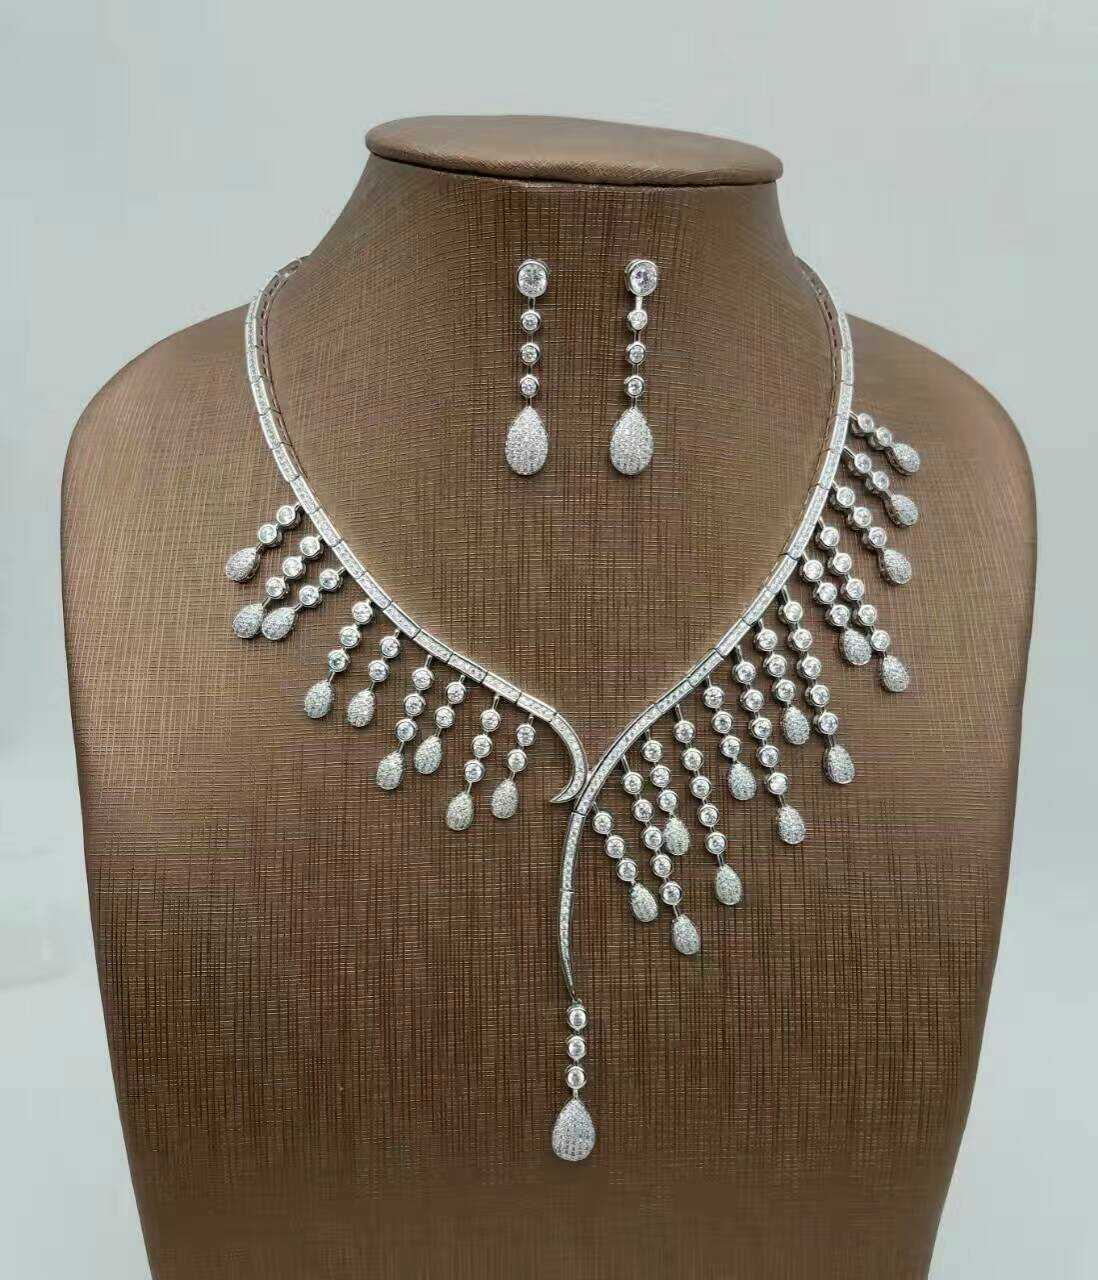 цена на ALW fashion sexy formal dress accessories necklace earrings set zirconium CZ stone drop of water